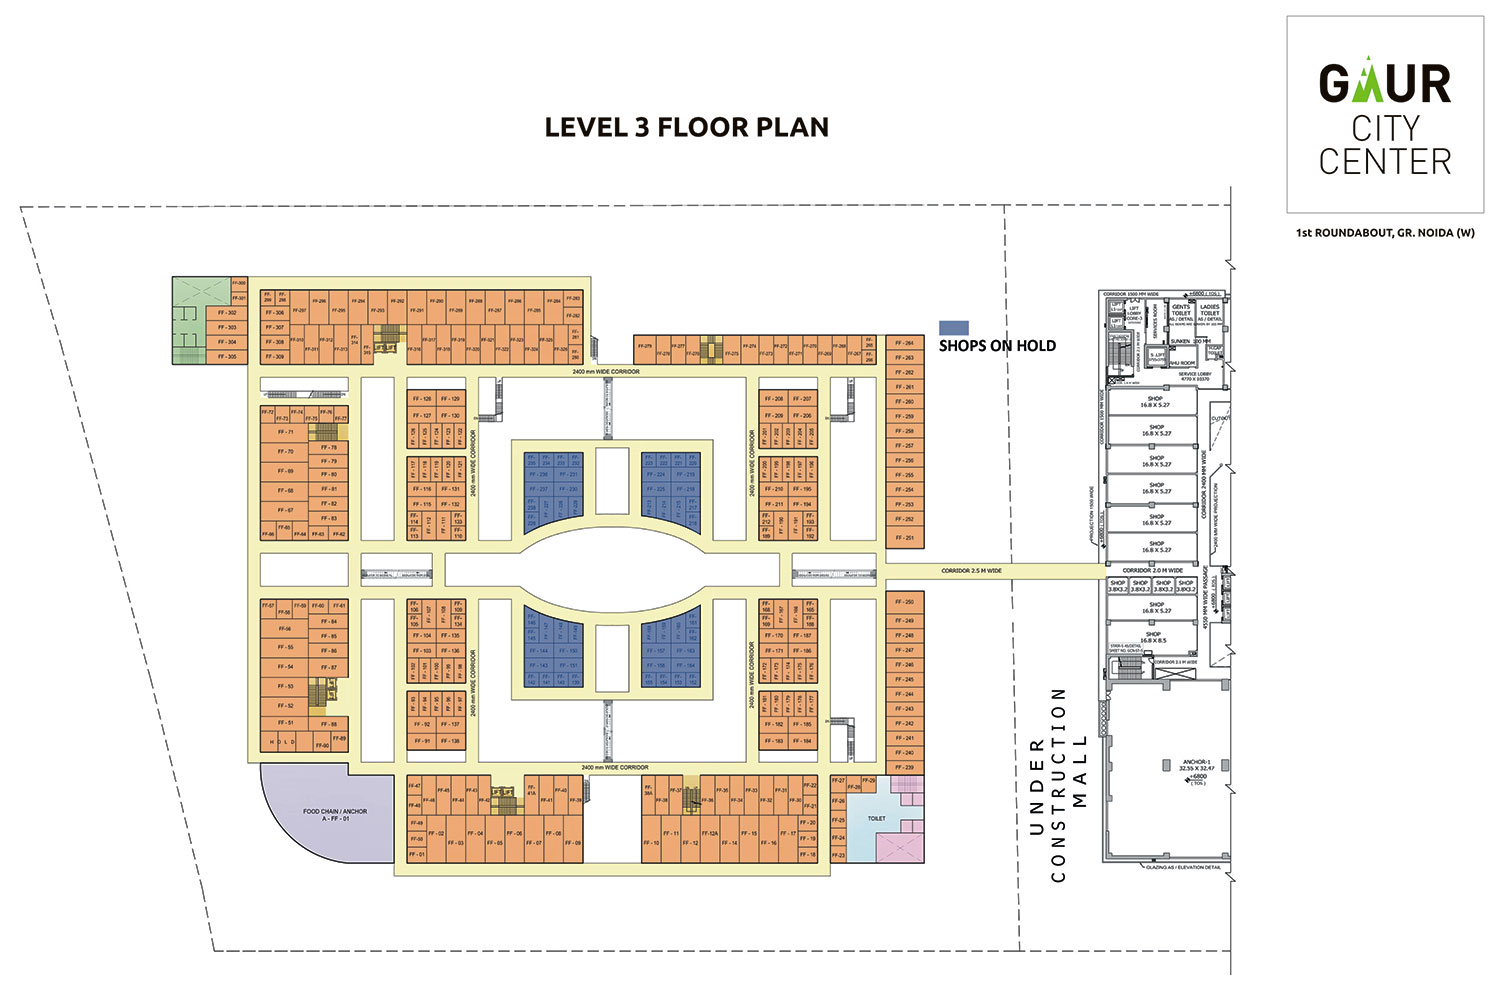 Gaur city center mall gaur city center office space for Floor plan project